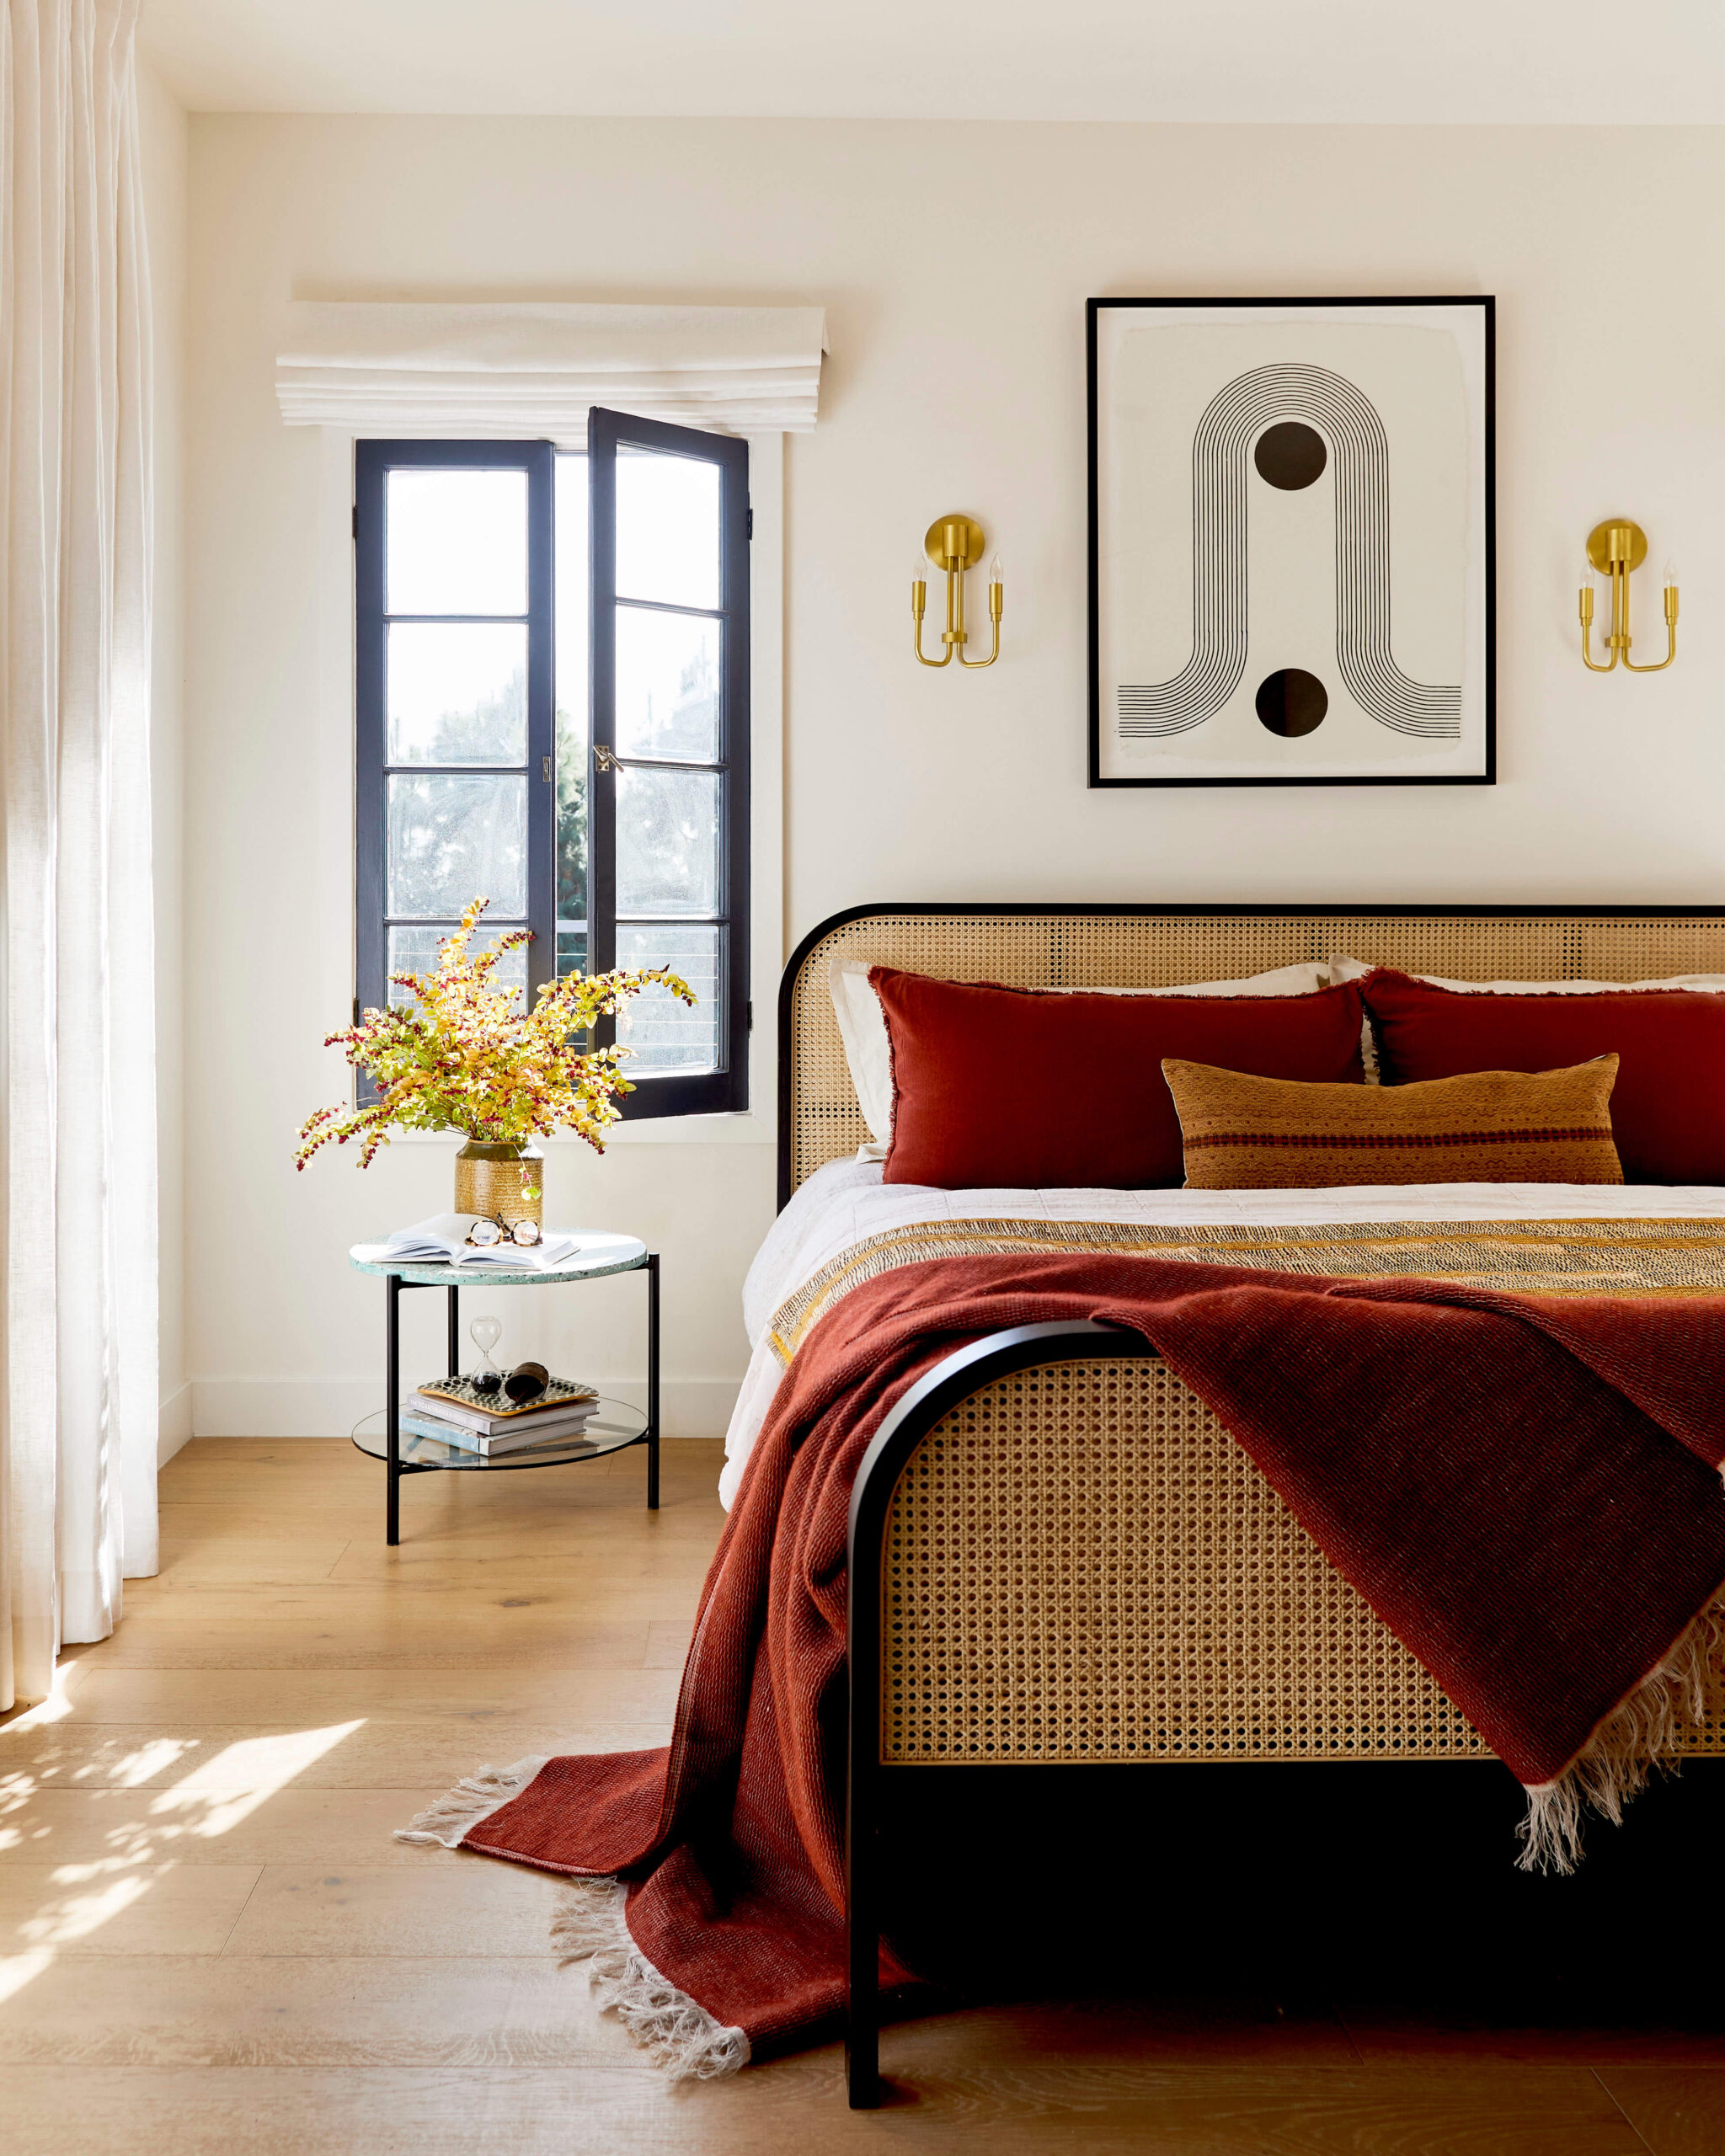 GINNY_MACDONALD_JACLYN_JOHNSON_BEDROOM_CANE_BED_RED_BLANKET